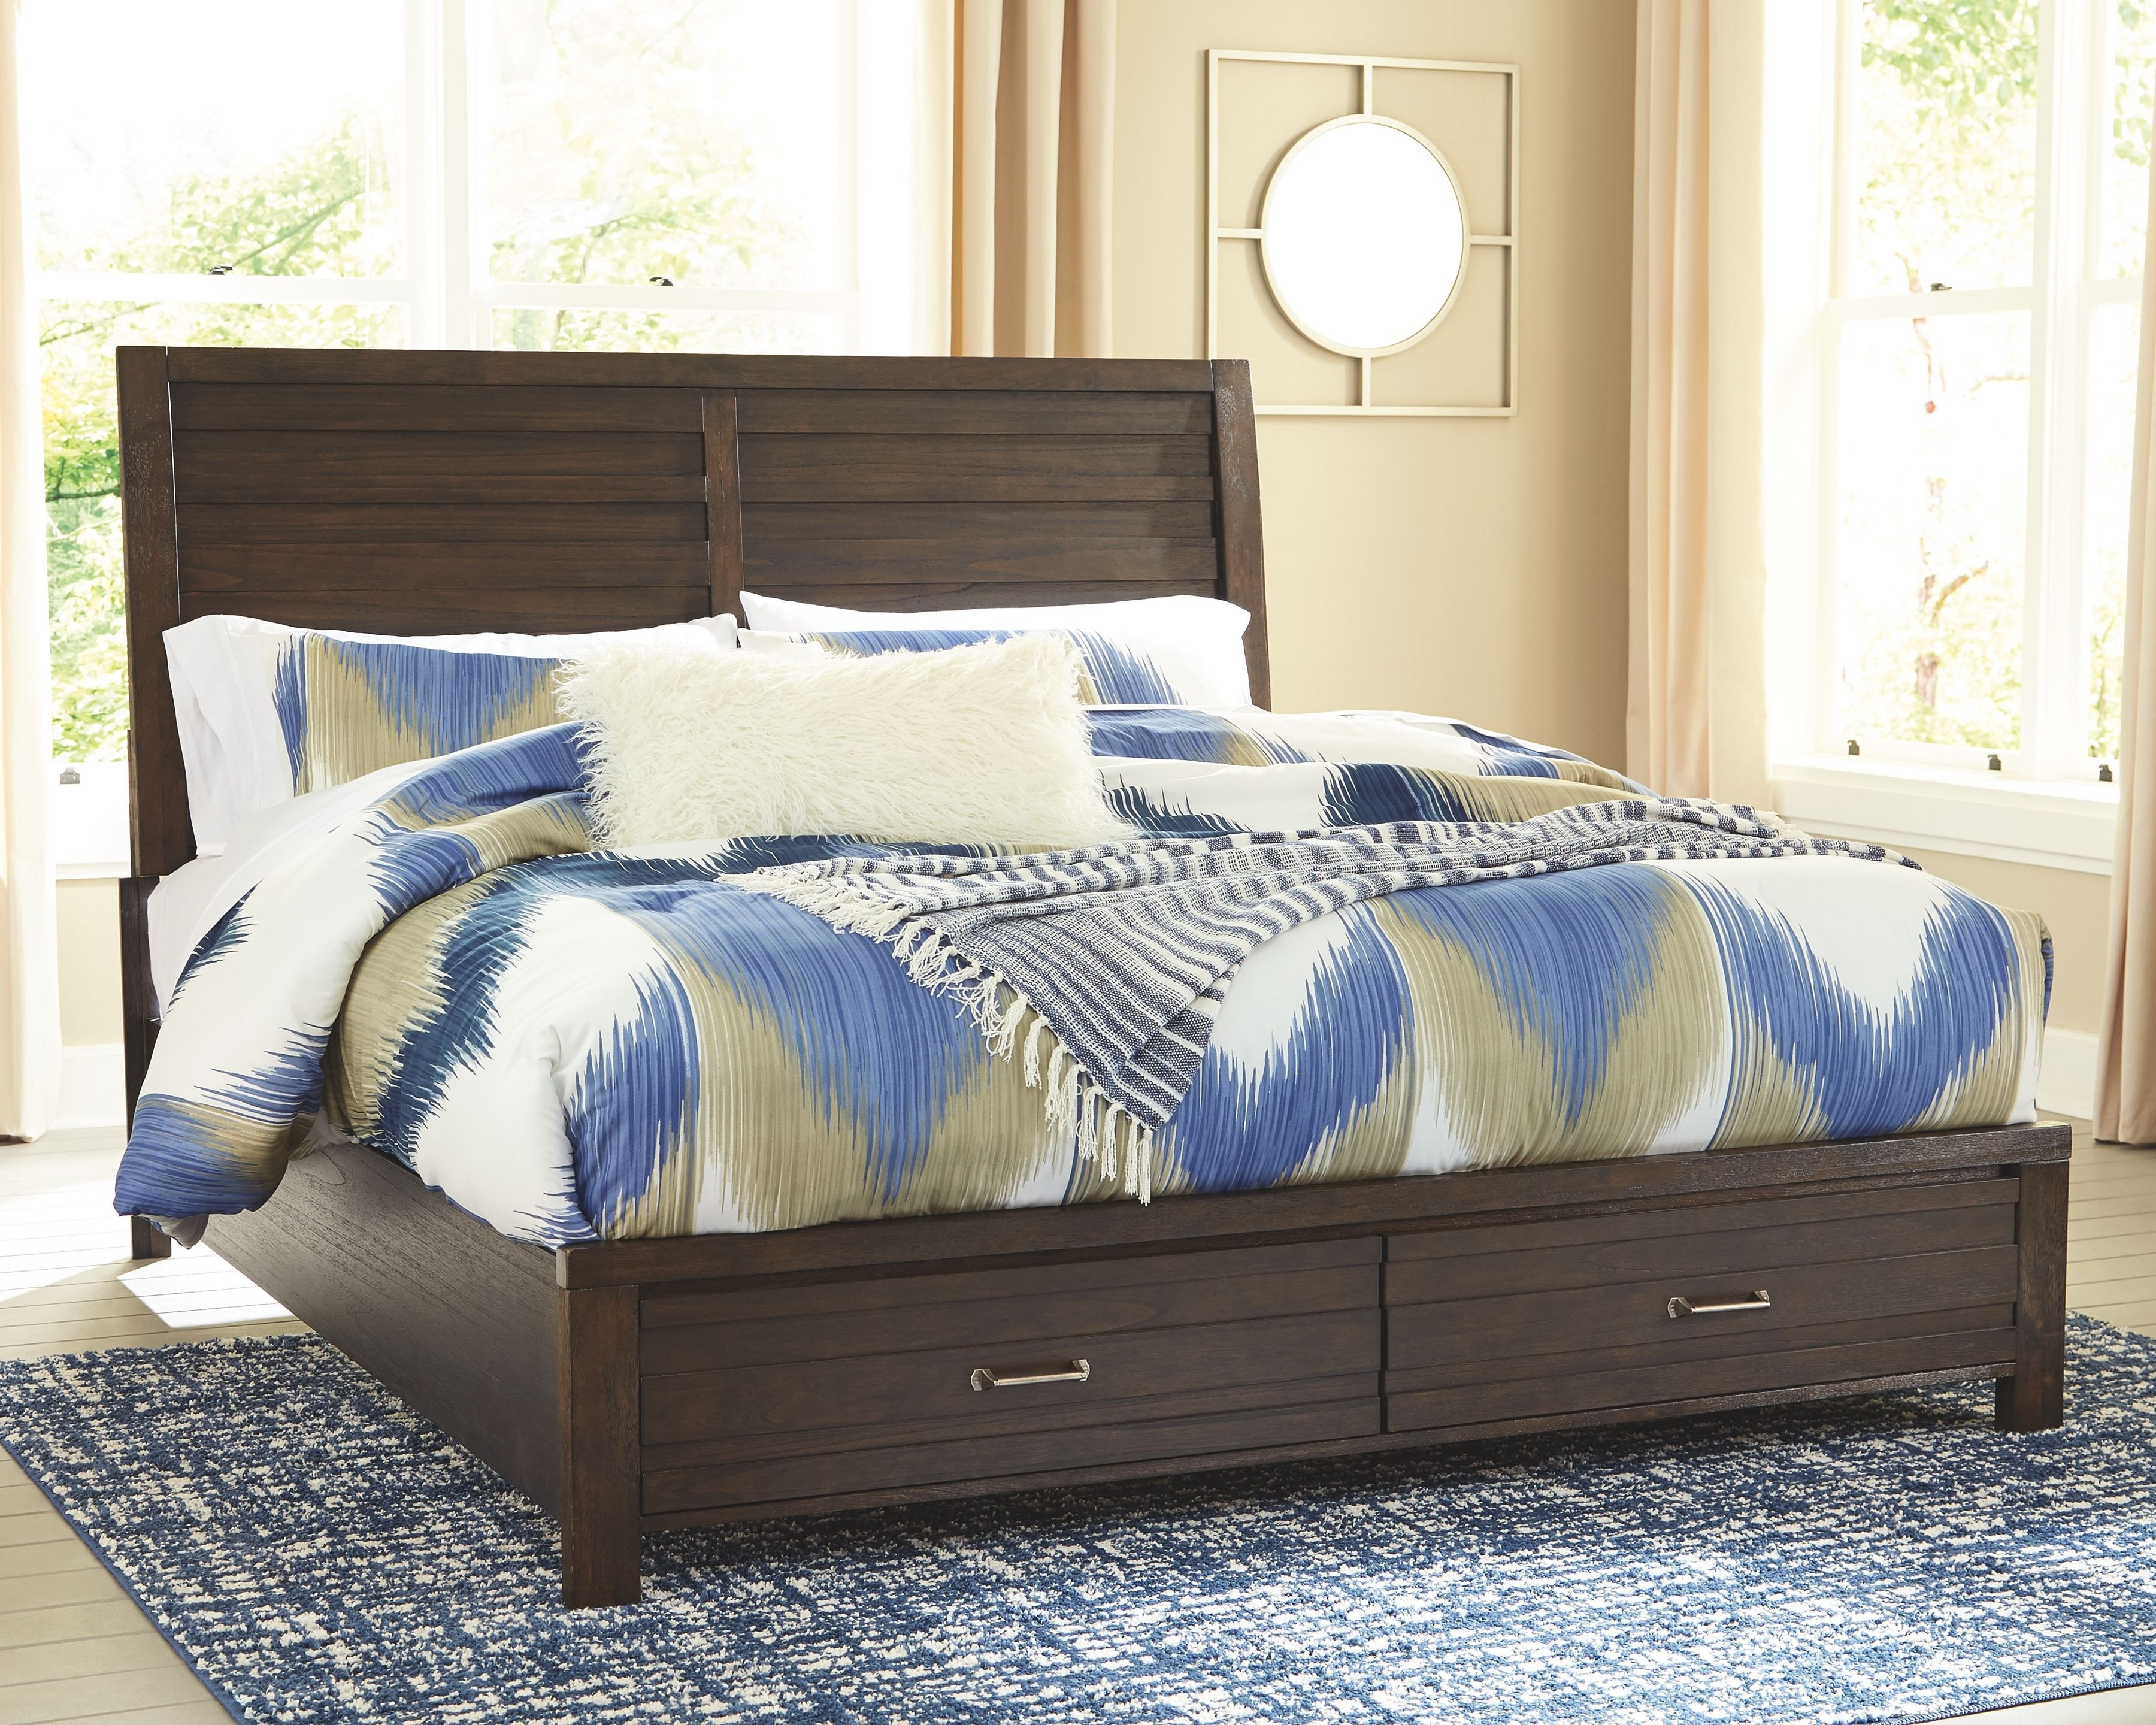 Bedroom Set California King Unique Darbry California King Panel Bed with Storage Brown